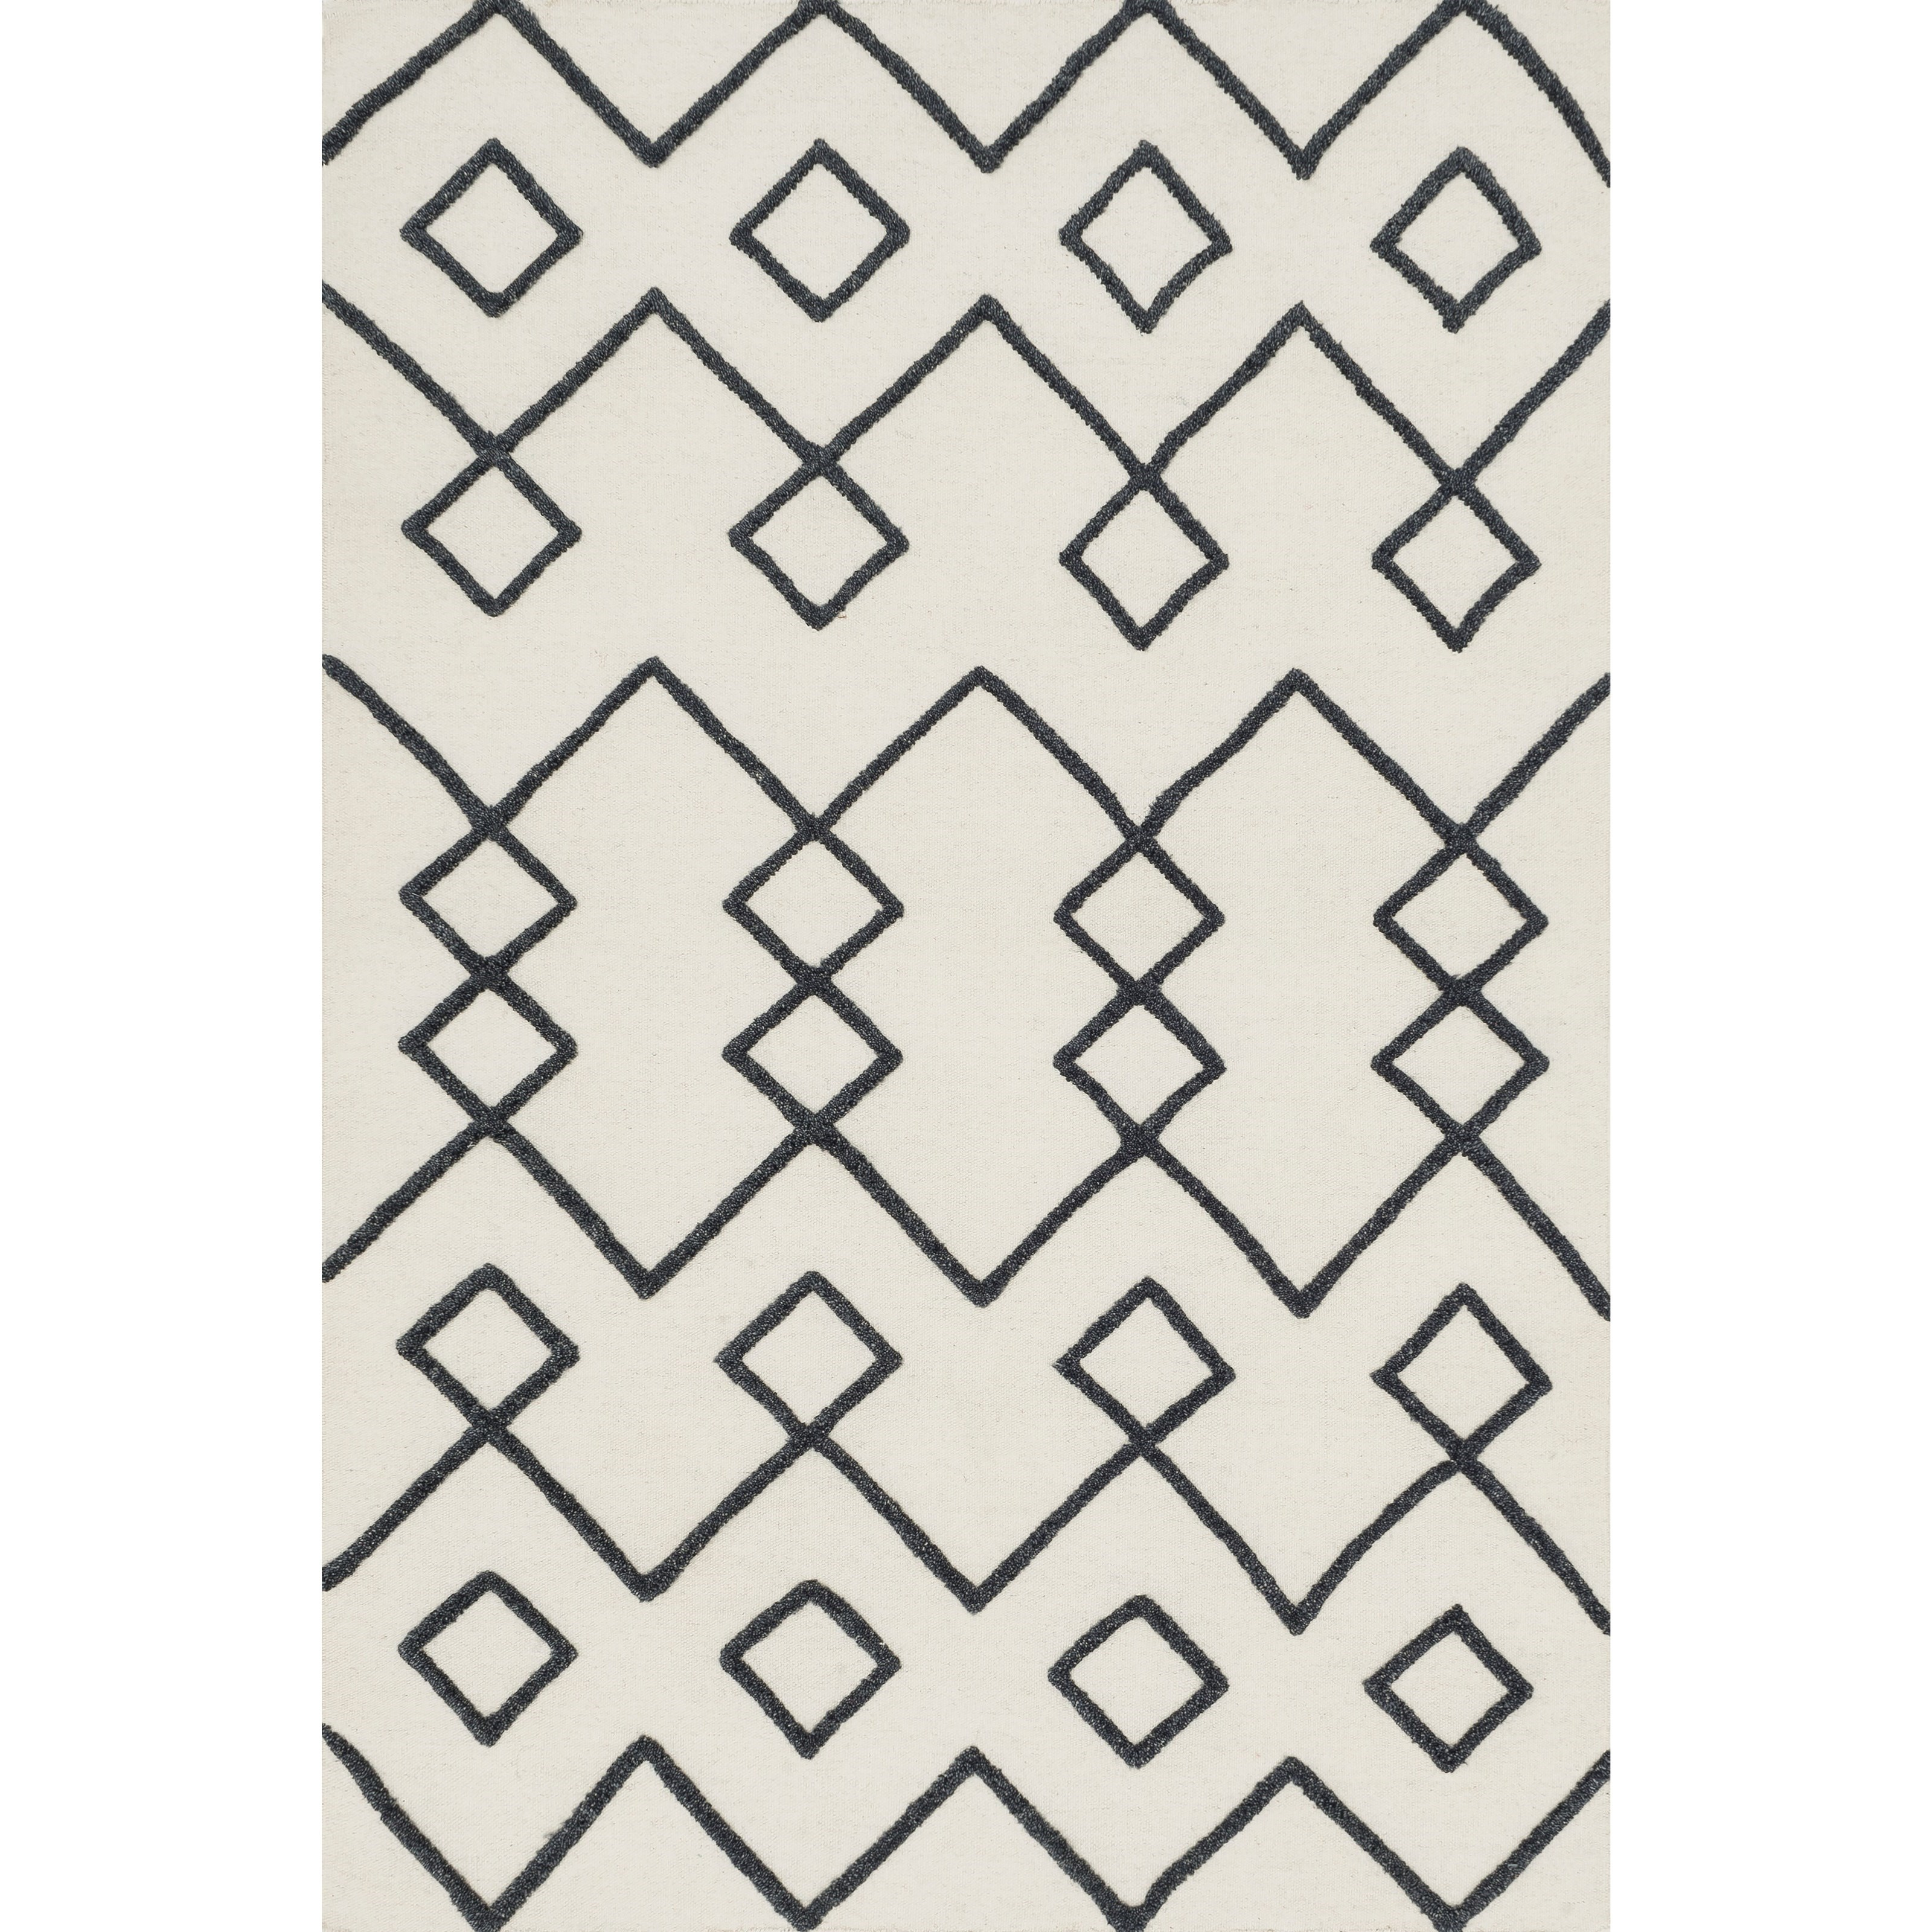 """Adler 1'6"""" x 1'6""""  Ivory Rug by Loloi Rugs at Sprintz Furniture"""